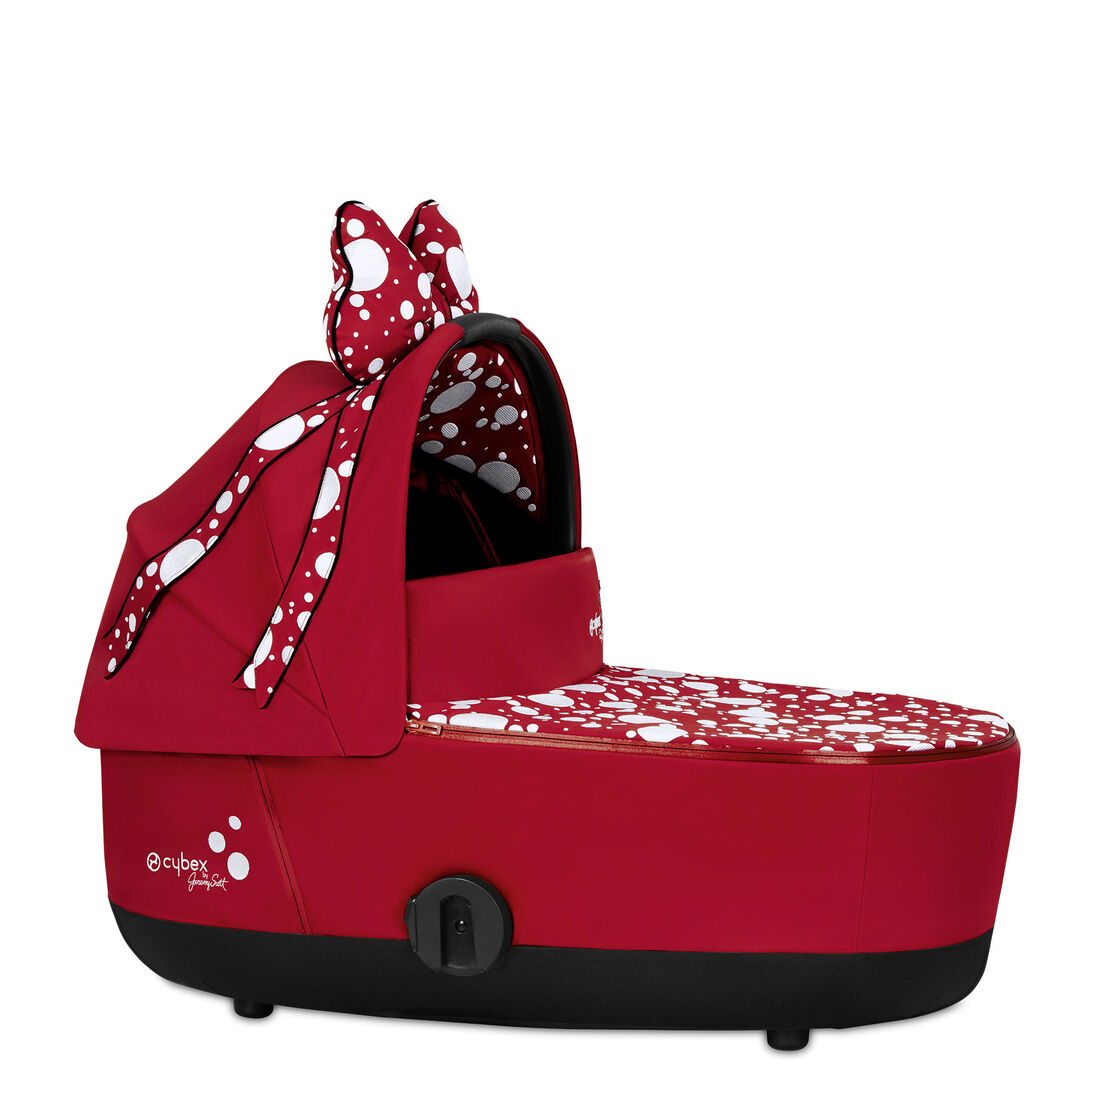 CYBEX Mios Lux Carry Cot - Petticoat Red in  large Bild 1